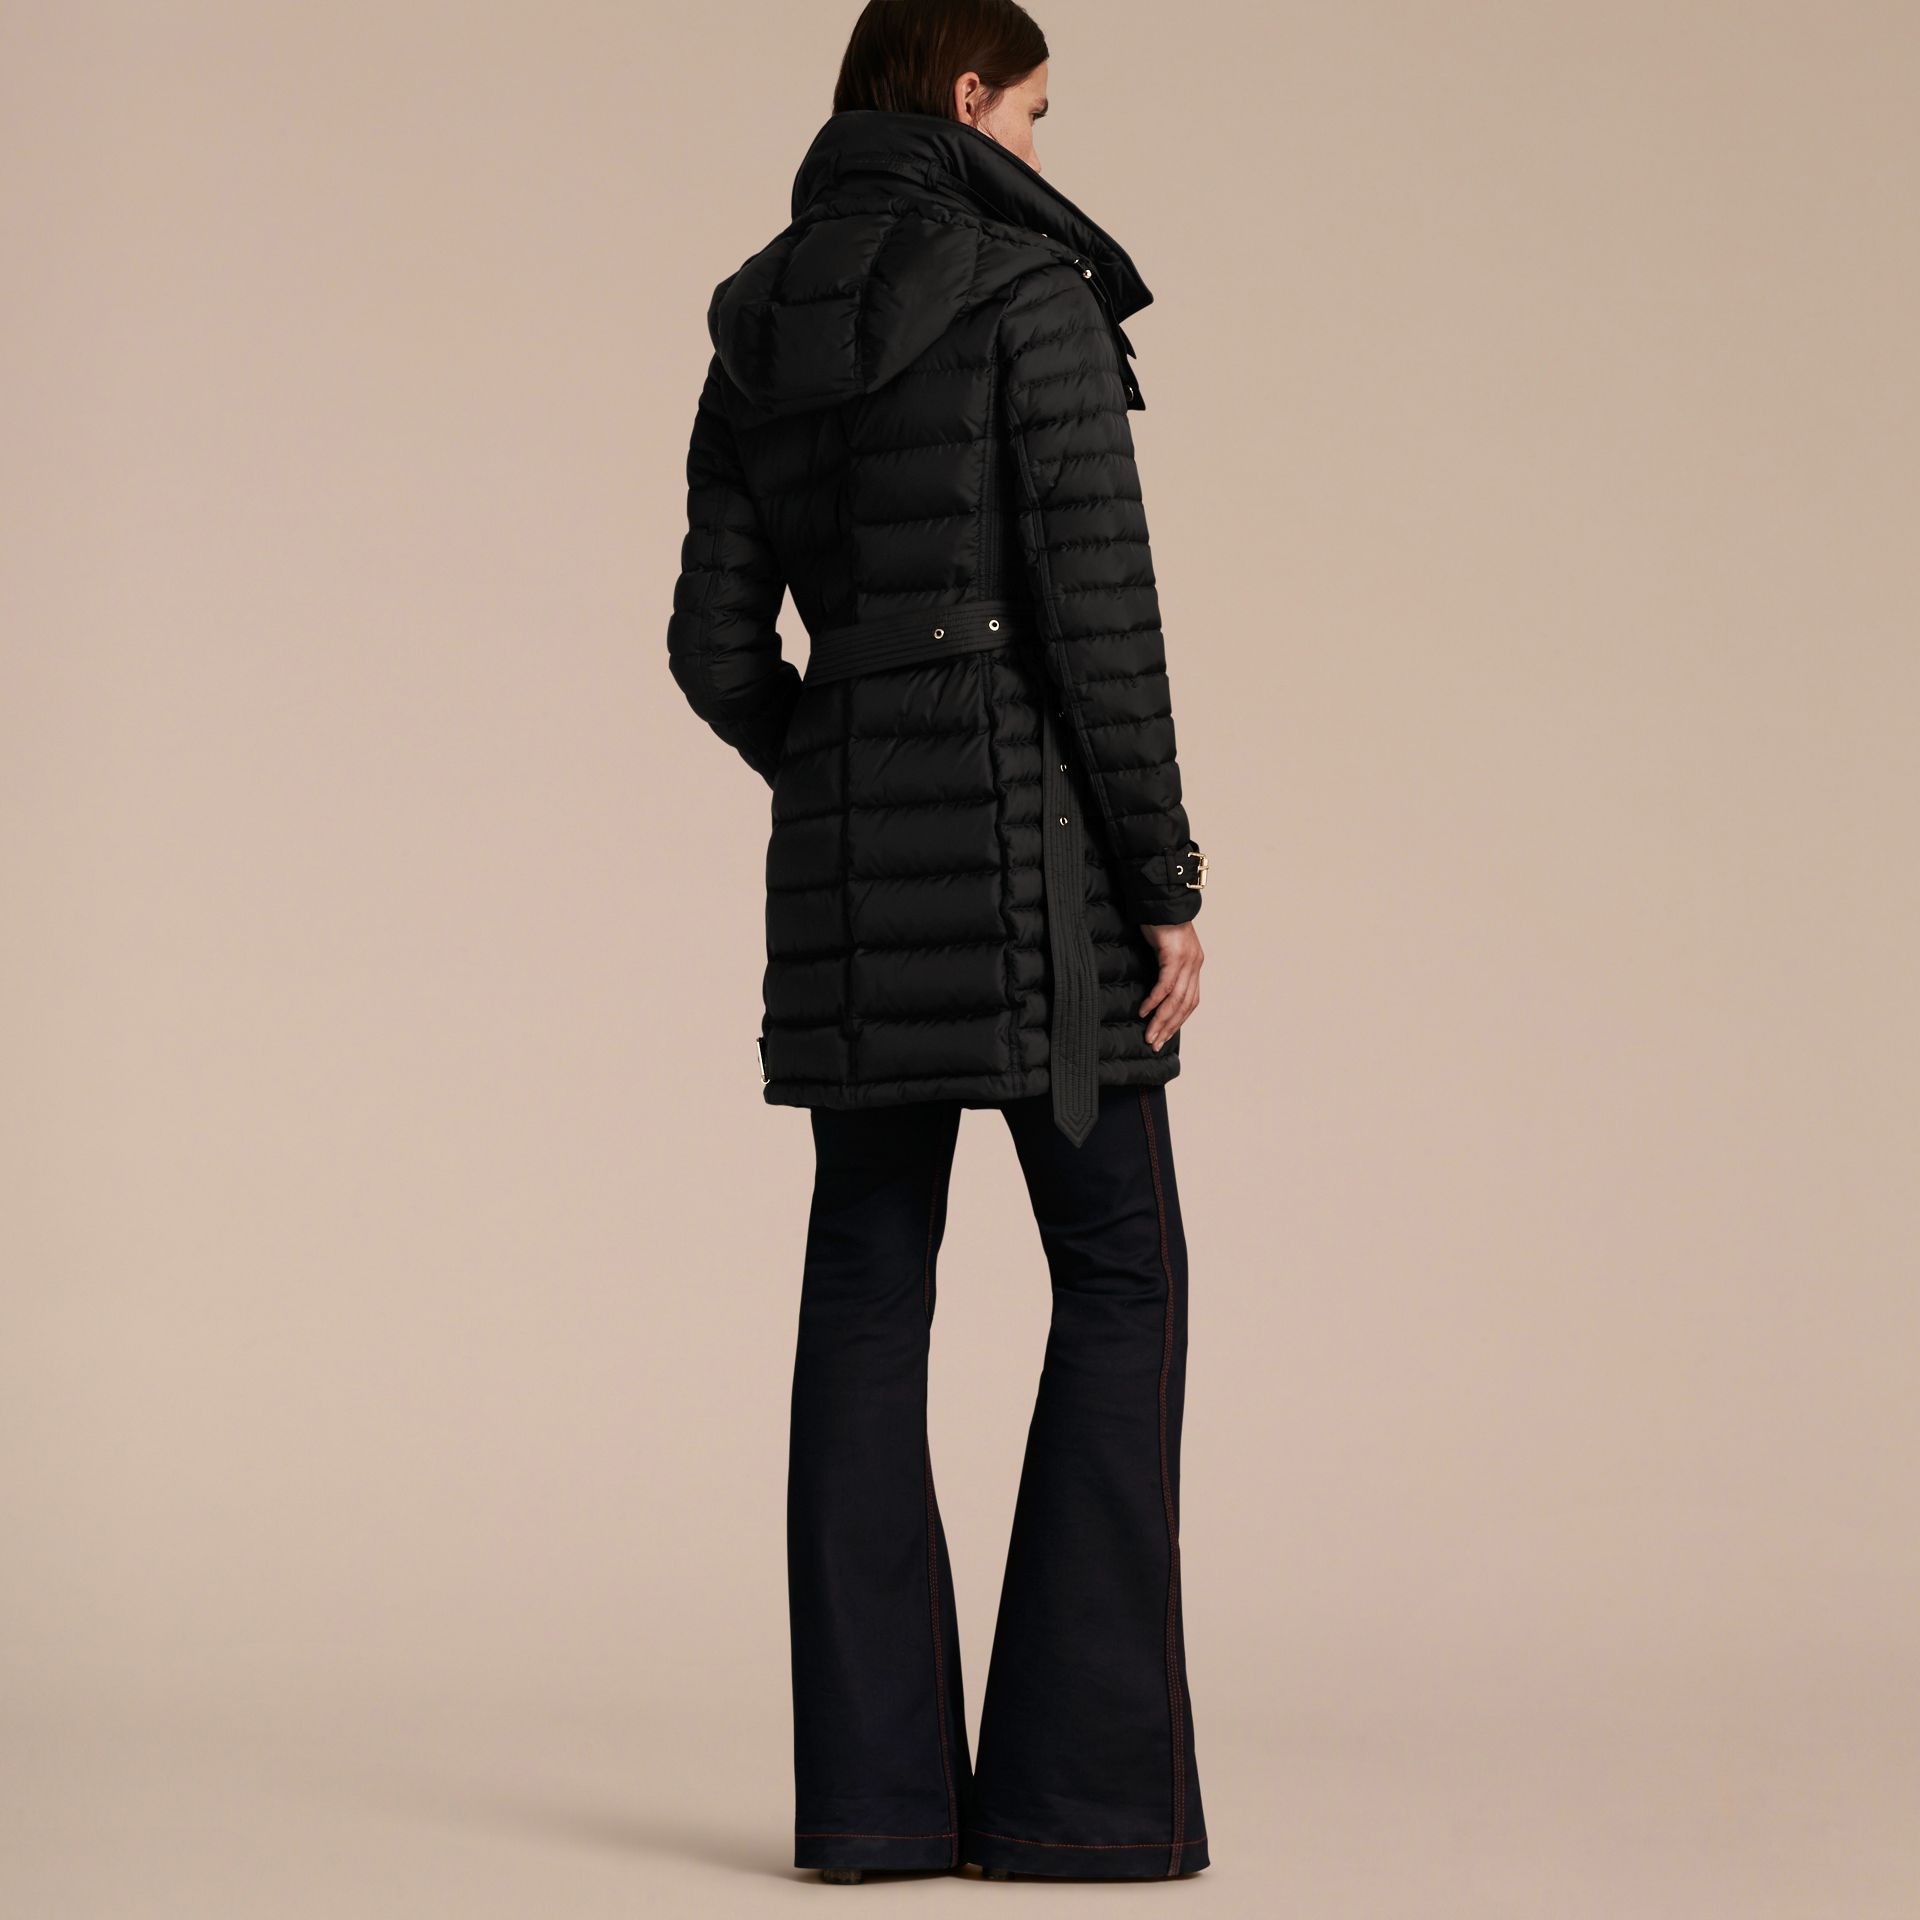 Down-filled Puffer Jacket with Packaway Hood in Black - Women | Burberry - gallery image 3